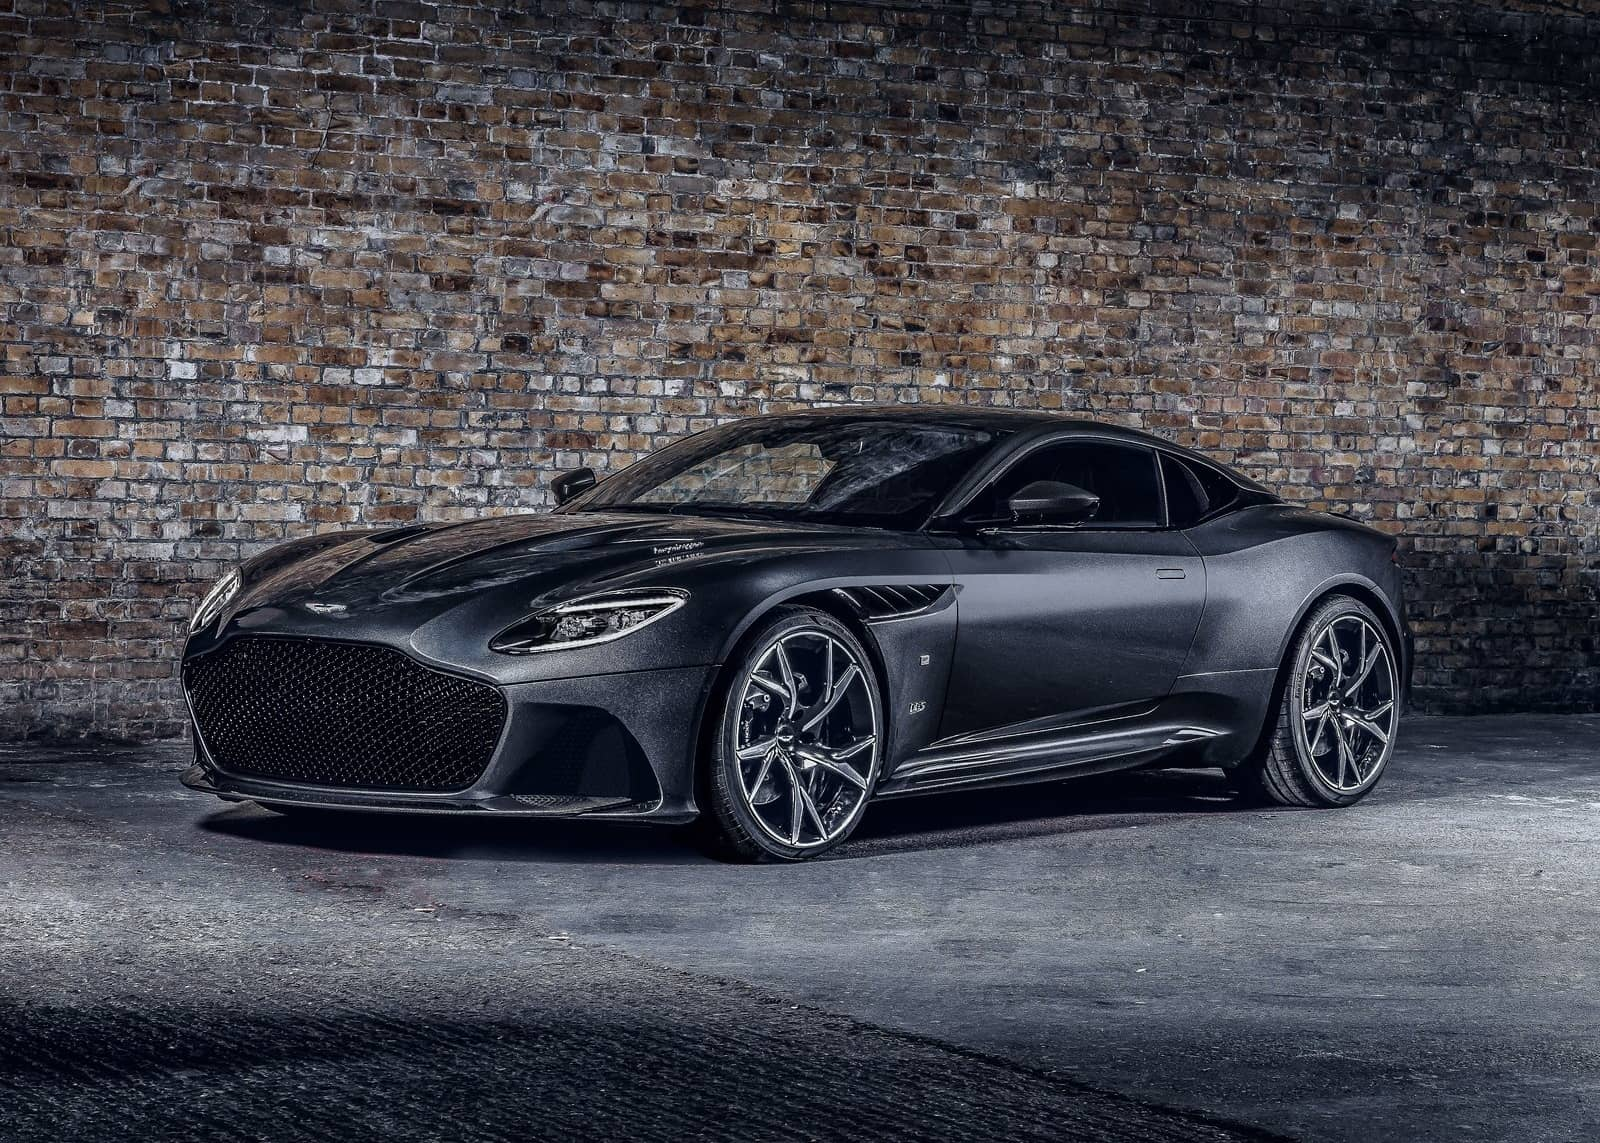 Aston Martin DBS Superleggera 007 Edition-4